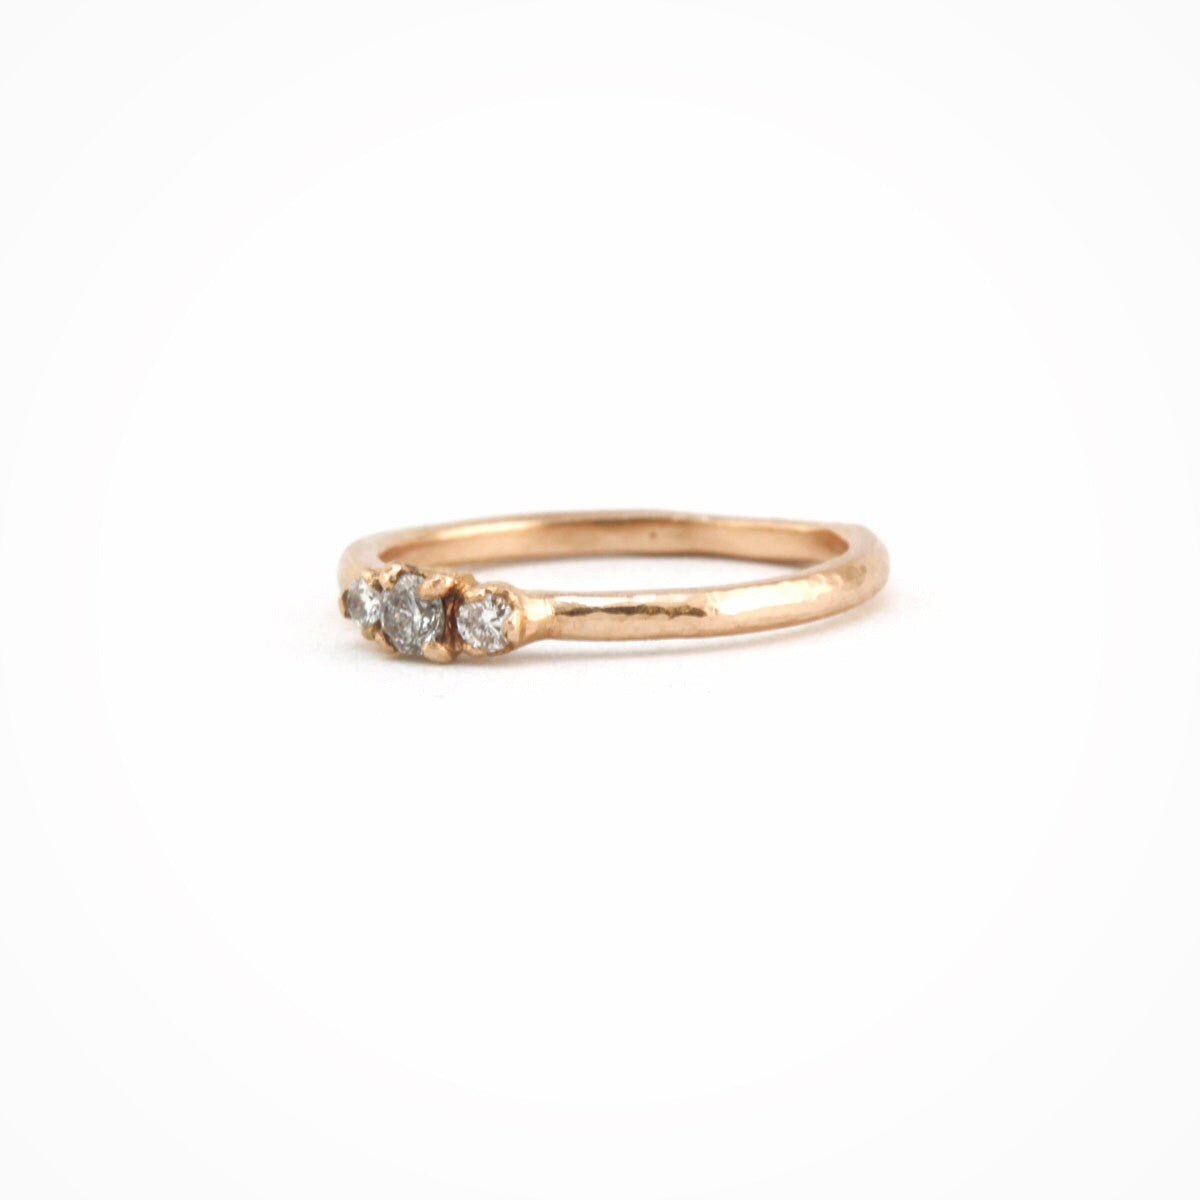 fine diamond engagement ring 18ct rose gold with three white diamonds, Custom Bespoke Handmade